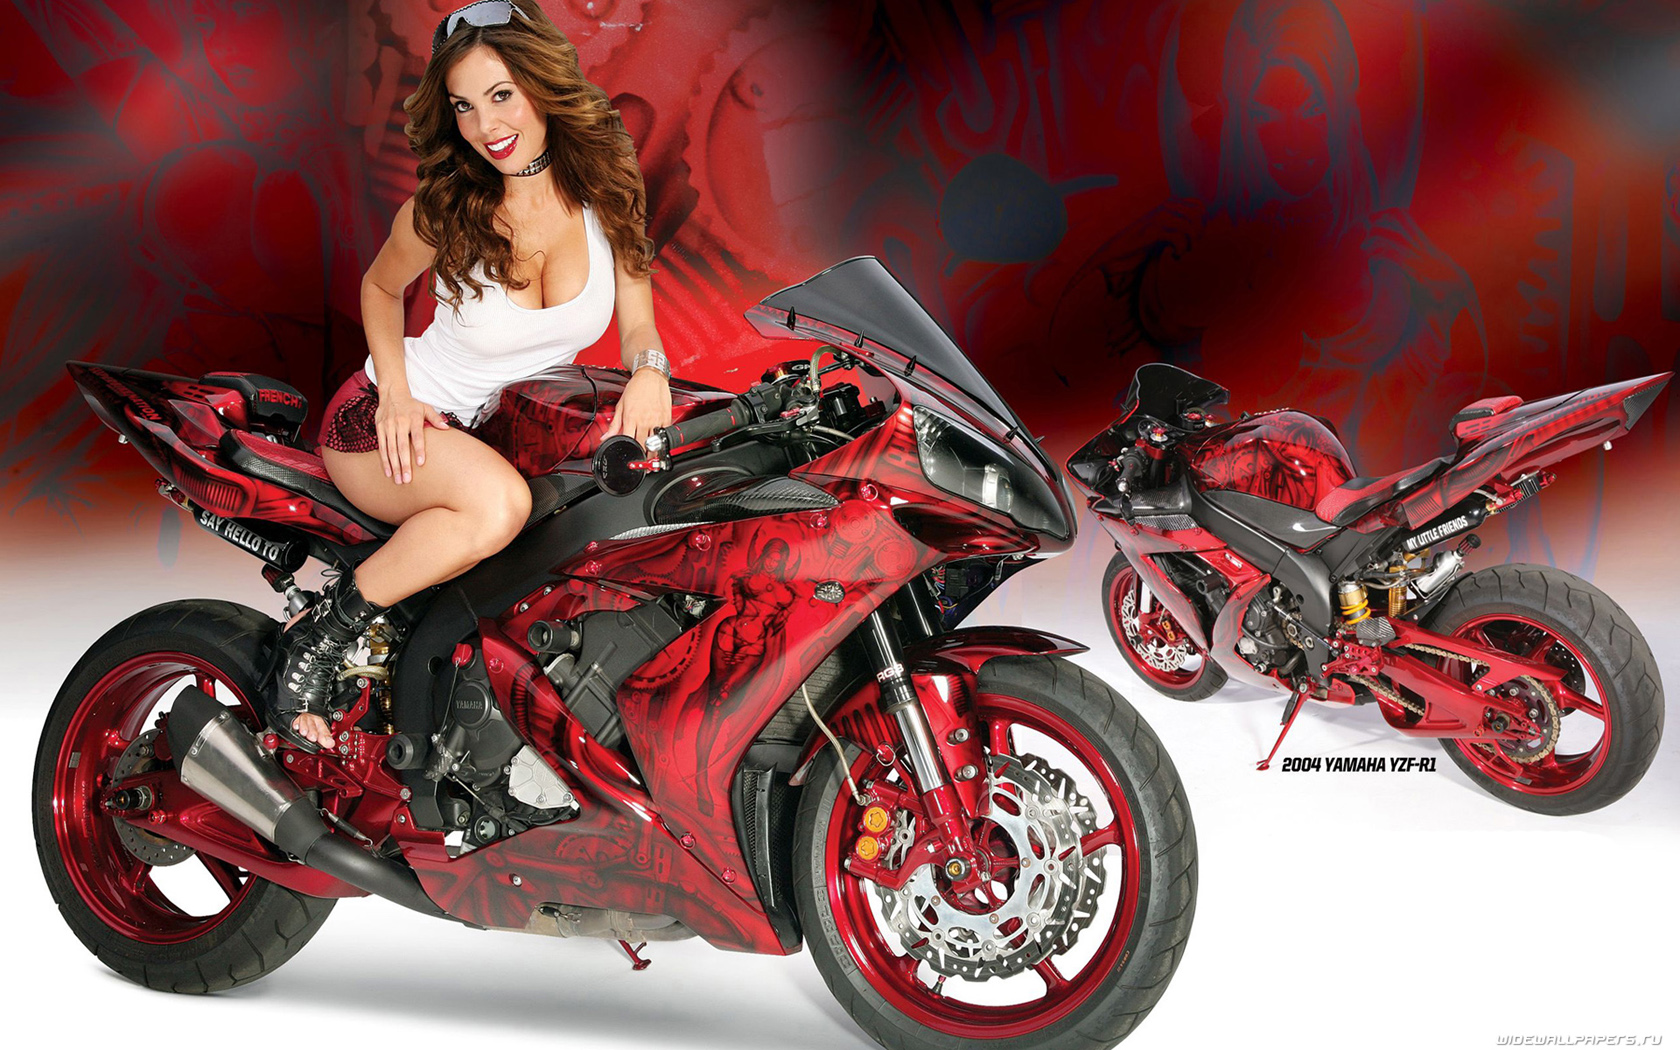 bikes-and-girls-wallpaper-1680x1050-060